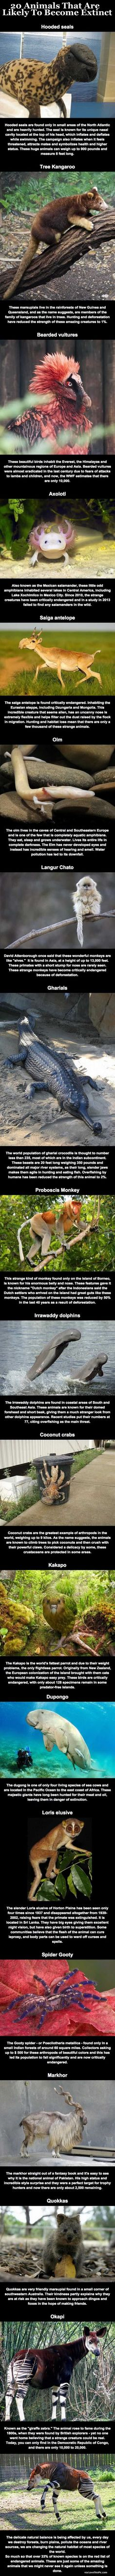 20 Animals That Are Likely To Become Extinct animals nature animal interesting wild life facts wild animals